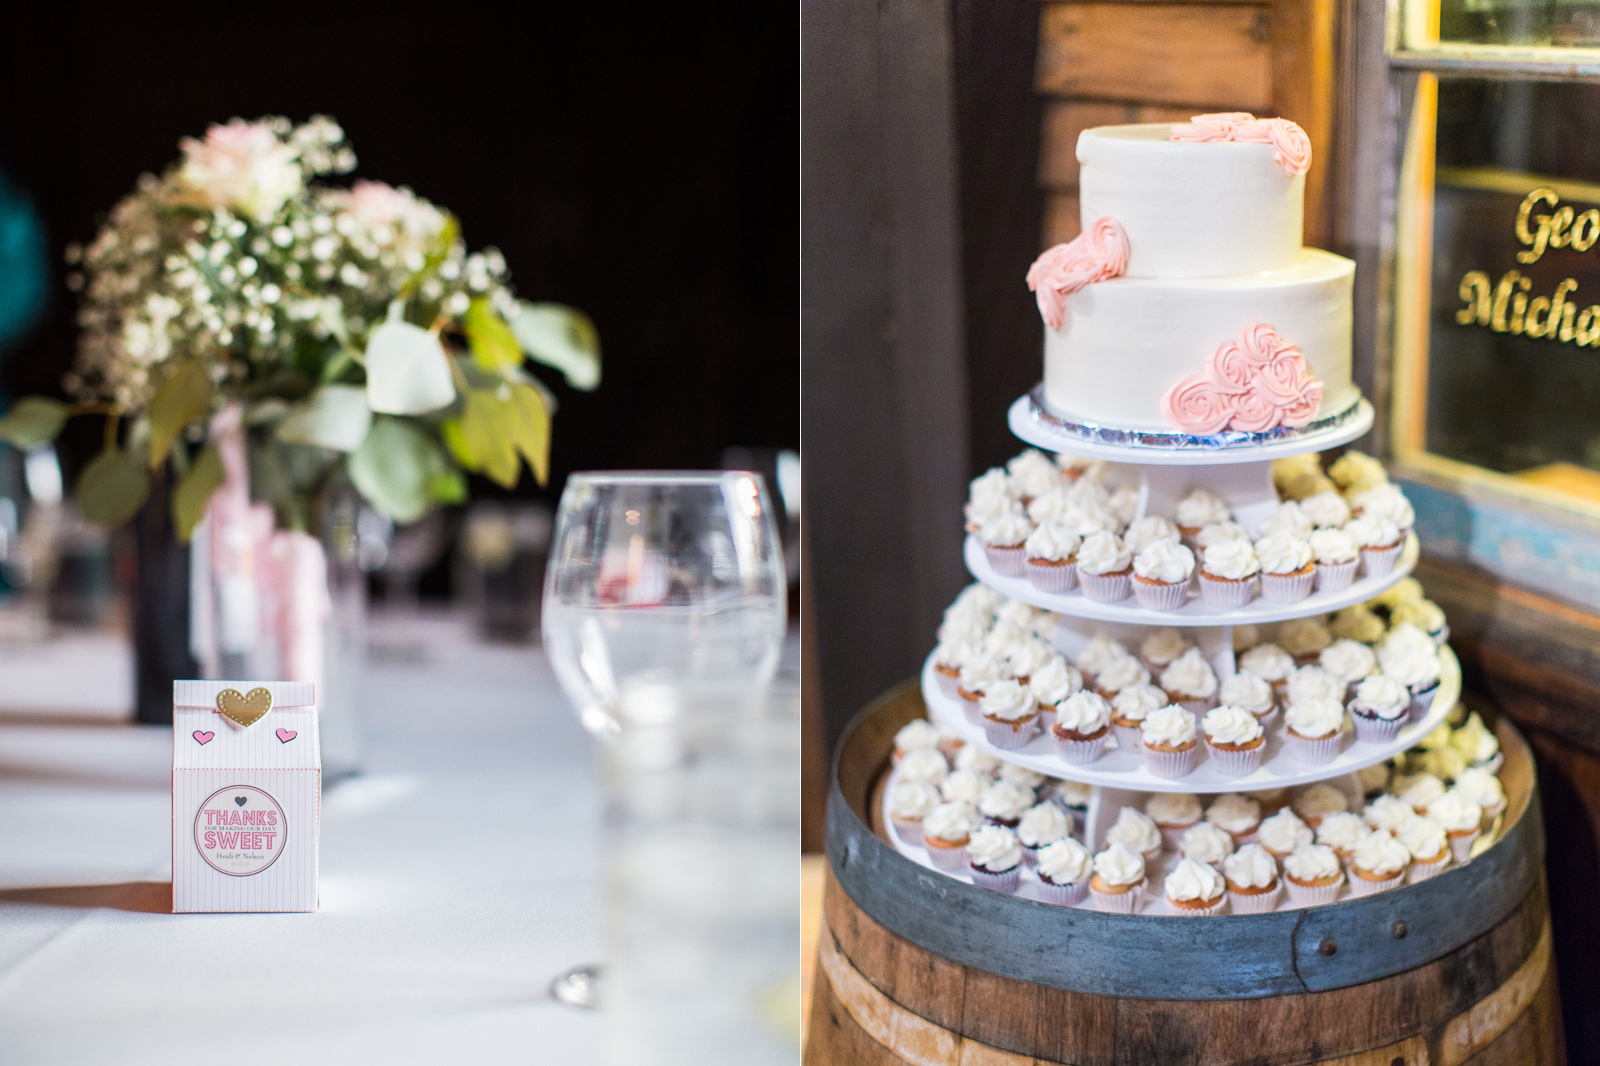 Wedding cake and favors at old carriage museum wedding in Santa Barbara.